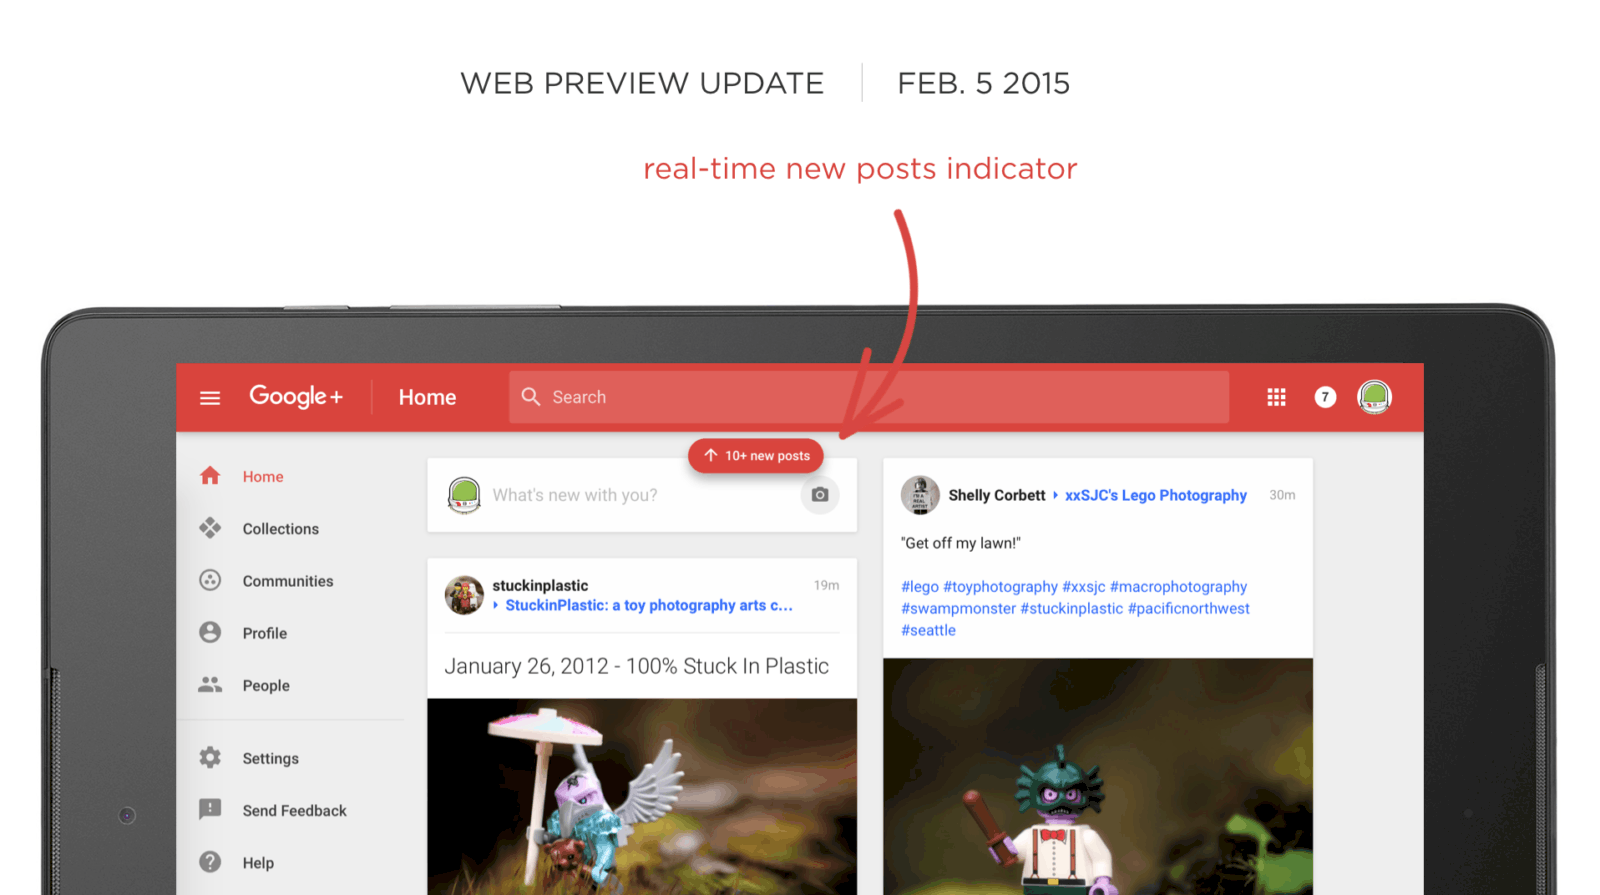 Google Plus On The Web Now Alerts You To New Posts In Real-Time ...